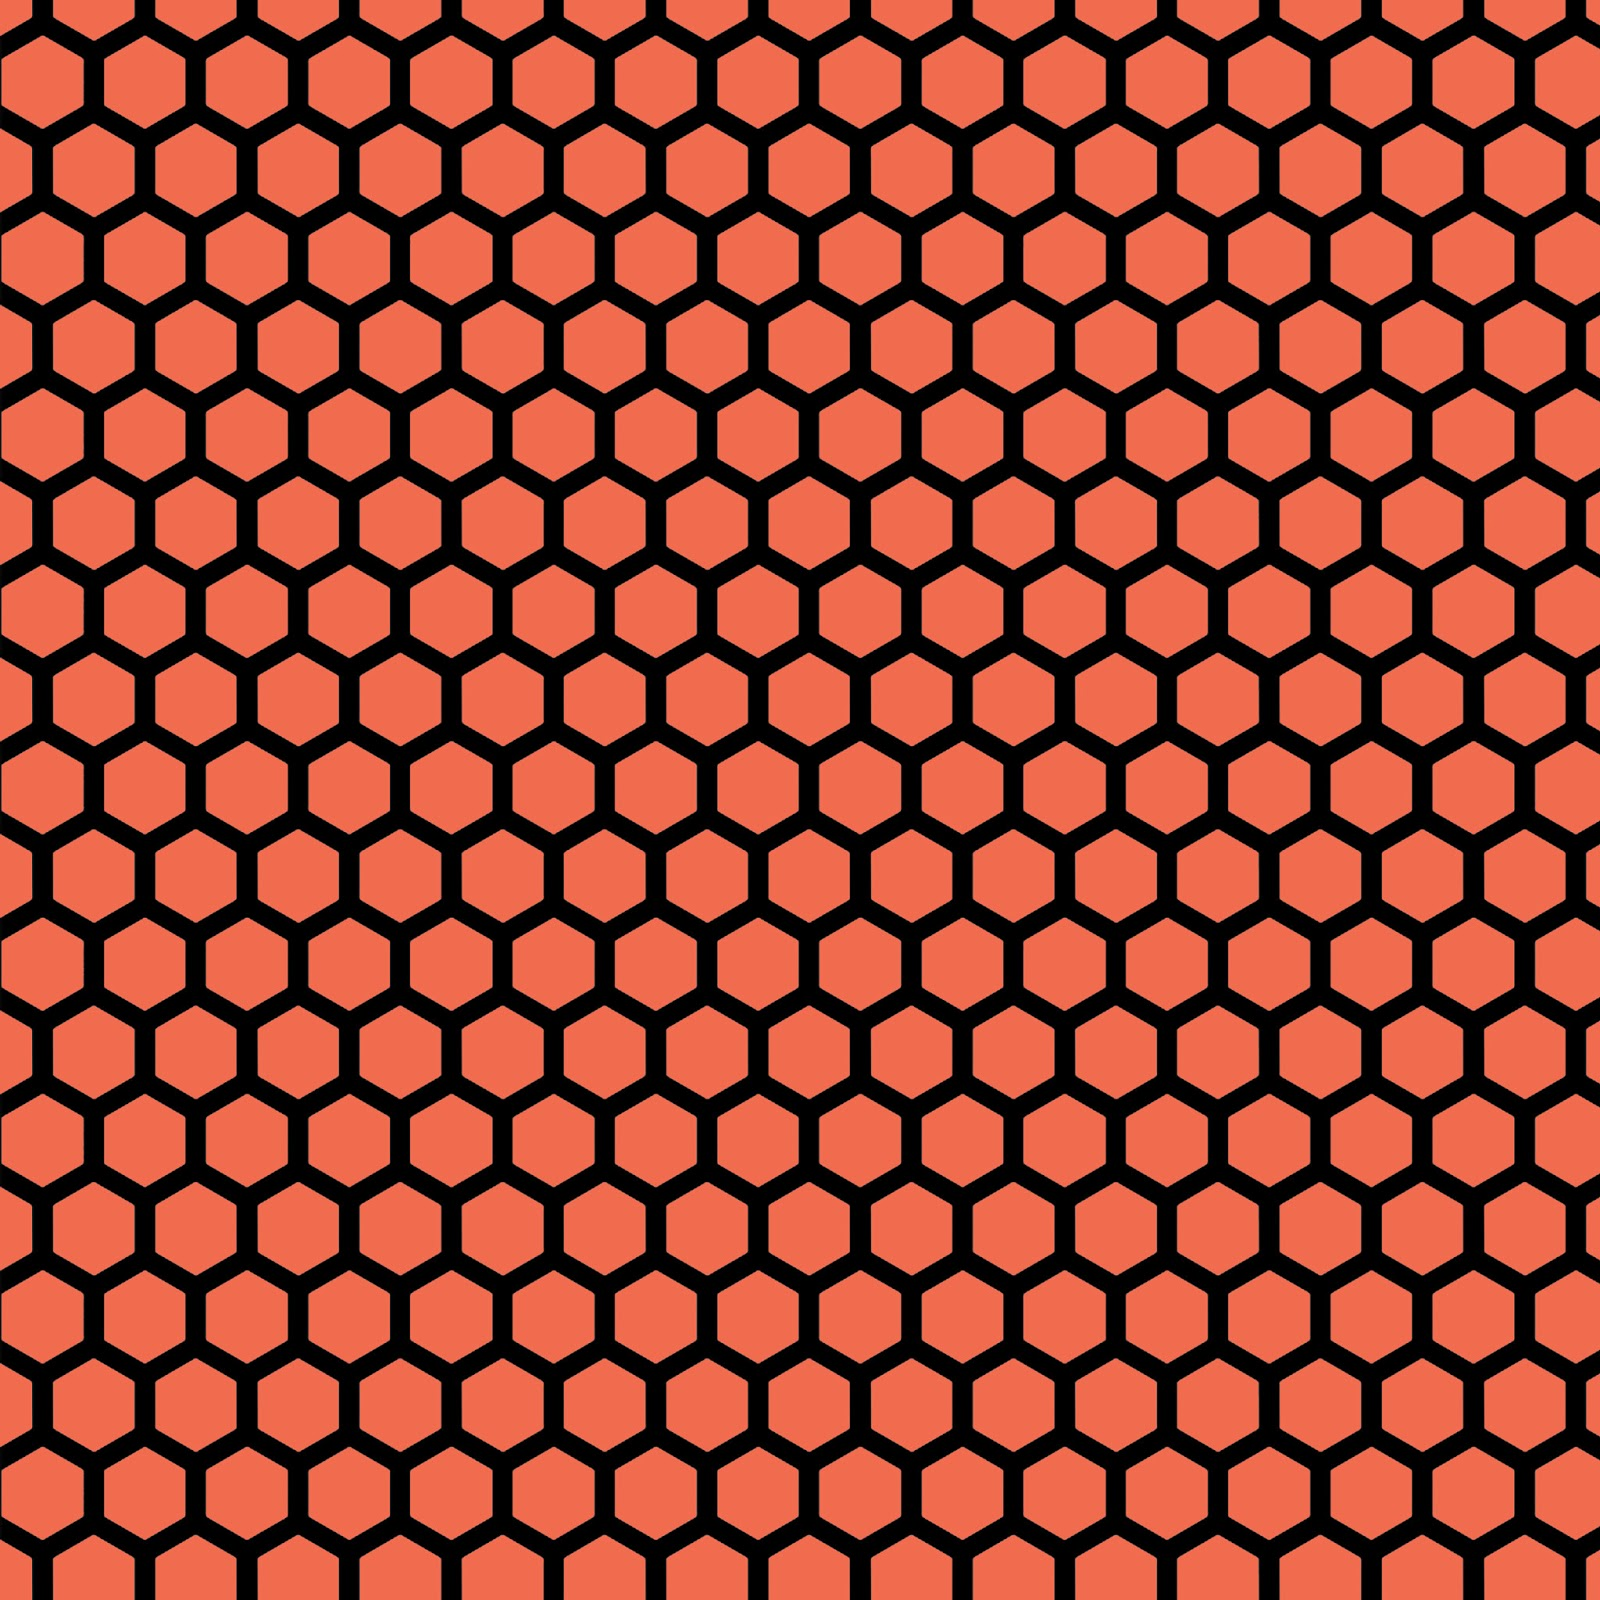 15 Colorful hues Hexagon Honeycomb Background Printables 1600x1600